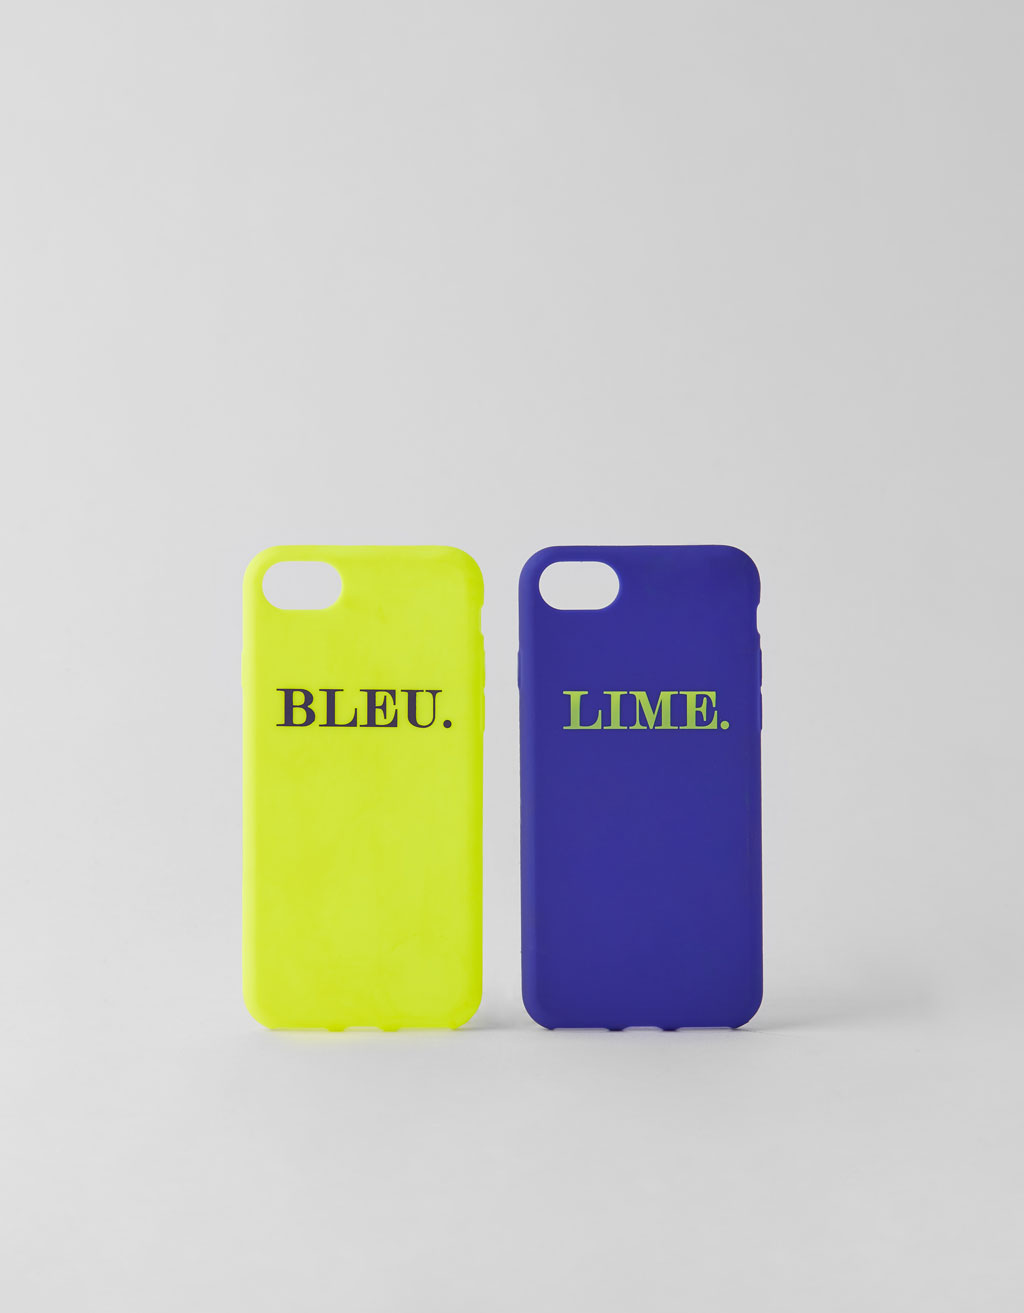 Set of 2 iPhone 6 / 6S / 7 / 8 cases